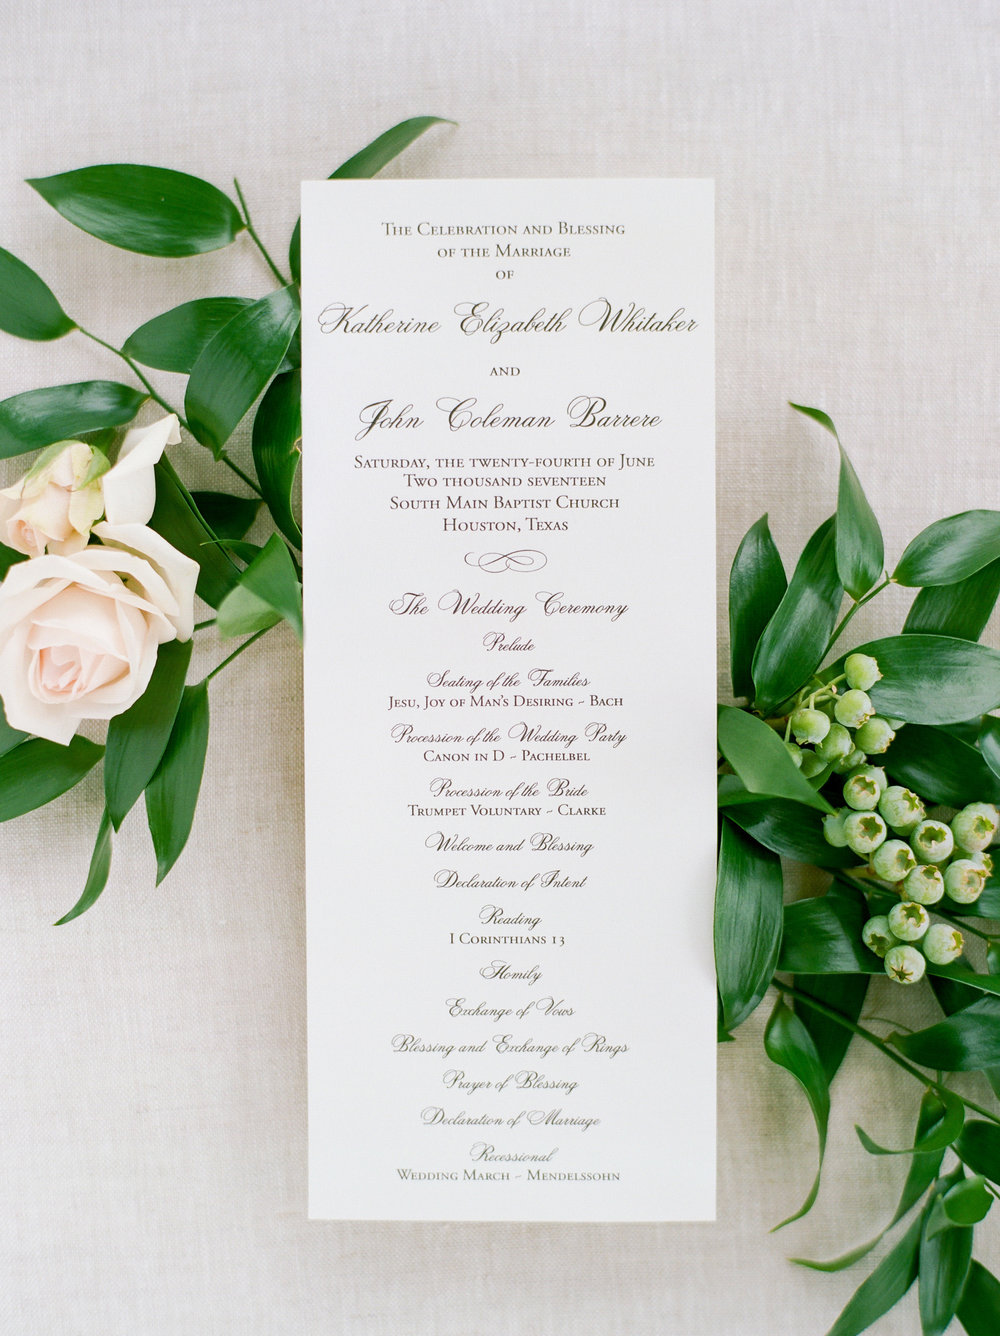 Fine-Art-Film-Houston-Wedding-Photographer-Best-Top-Luxury-Texas-Austin-Dallas-Destination-Dana-Fernandez-Photography-River-Oaks-Country-Club-South-Main-Baptist-Ceremony-Reception-Wedding-20.jpg